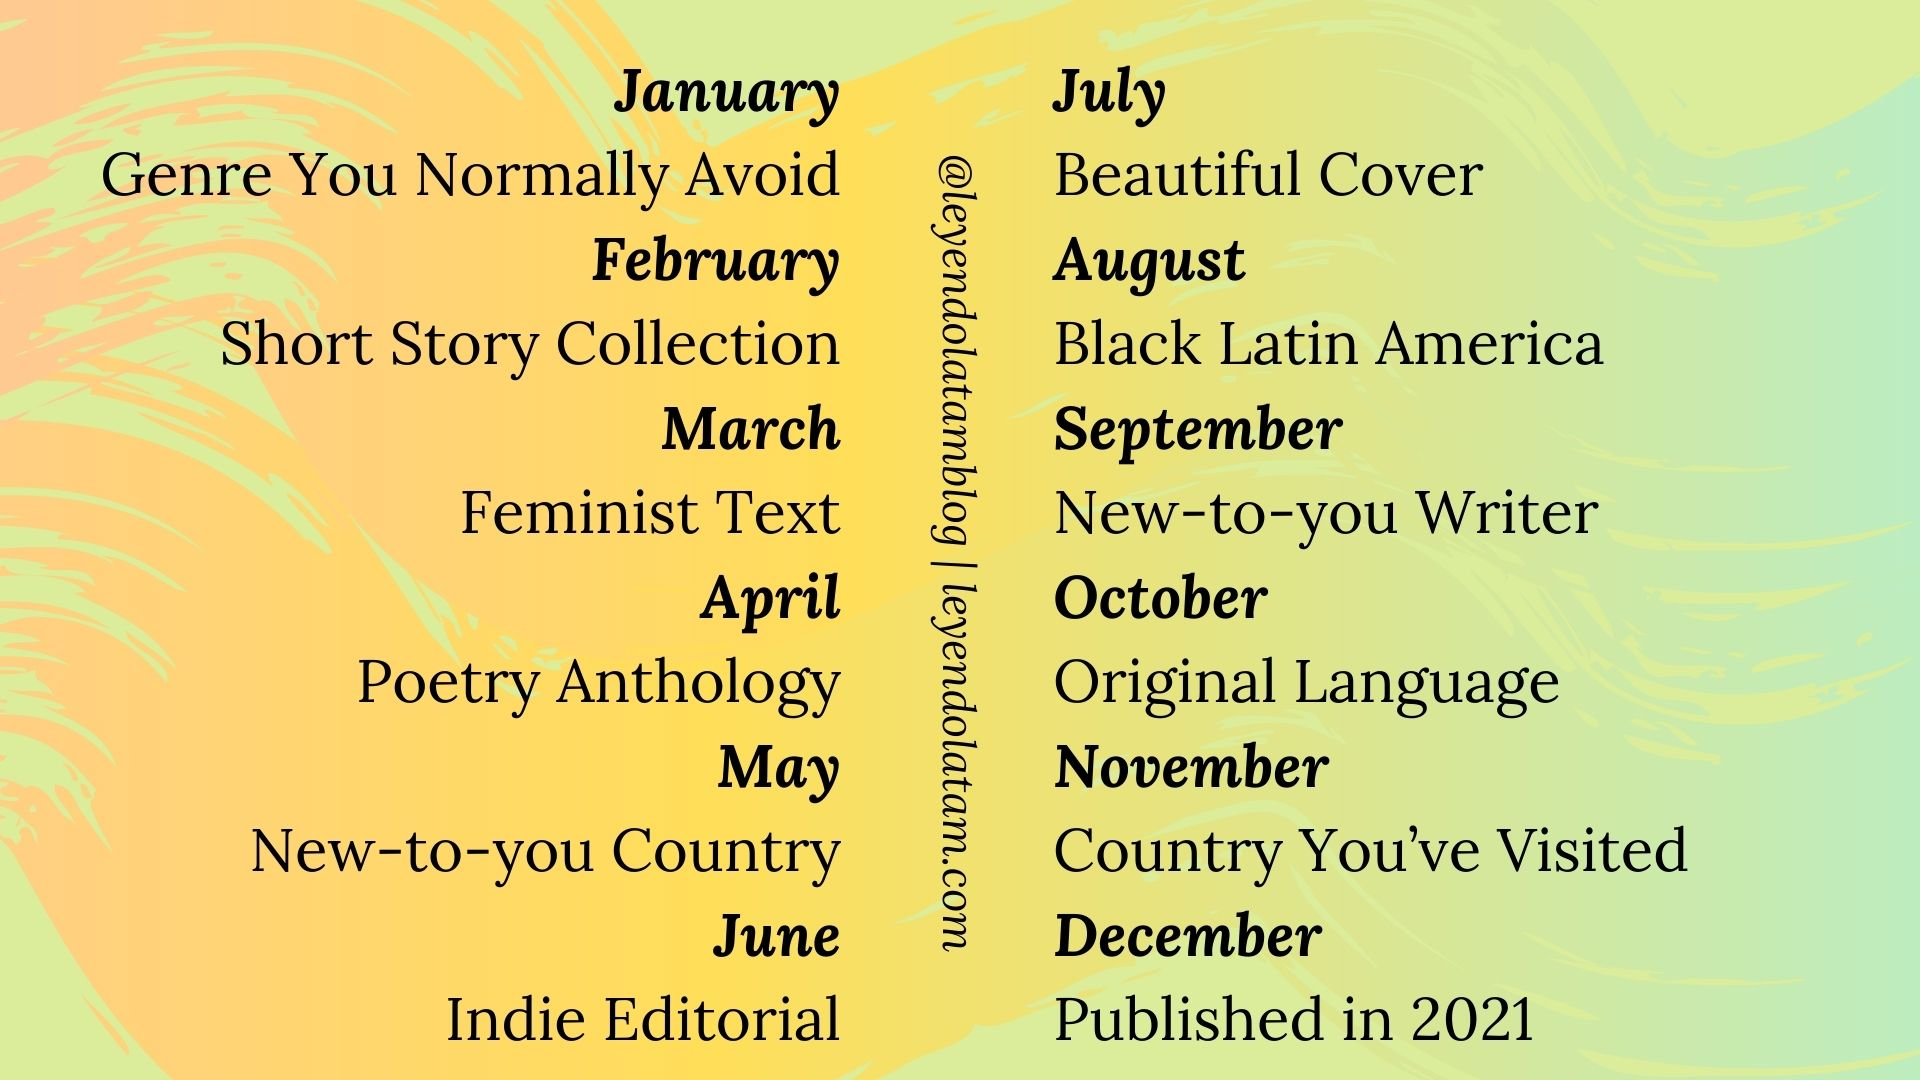 January – Genre You Normally Avoid February – Short Story Collection March – Feminism T April – Poetry Anthology May – New-to-you Country June – Indie Editorial July – Beautiful Cover August – Black Latin America September – New-to-you Writer October – Original Language November – Country You've Visited/ Want to Visit December – Published in 2021